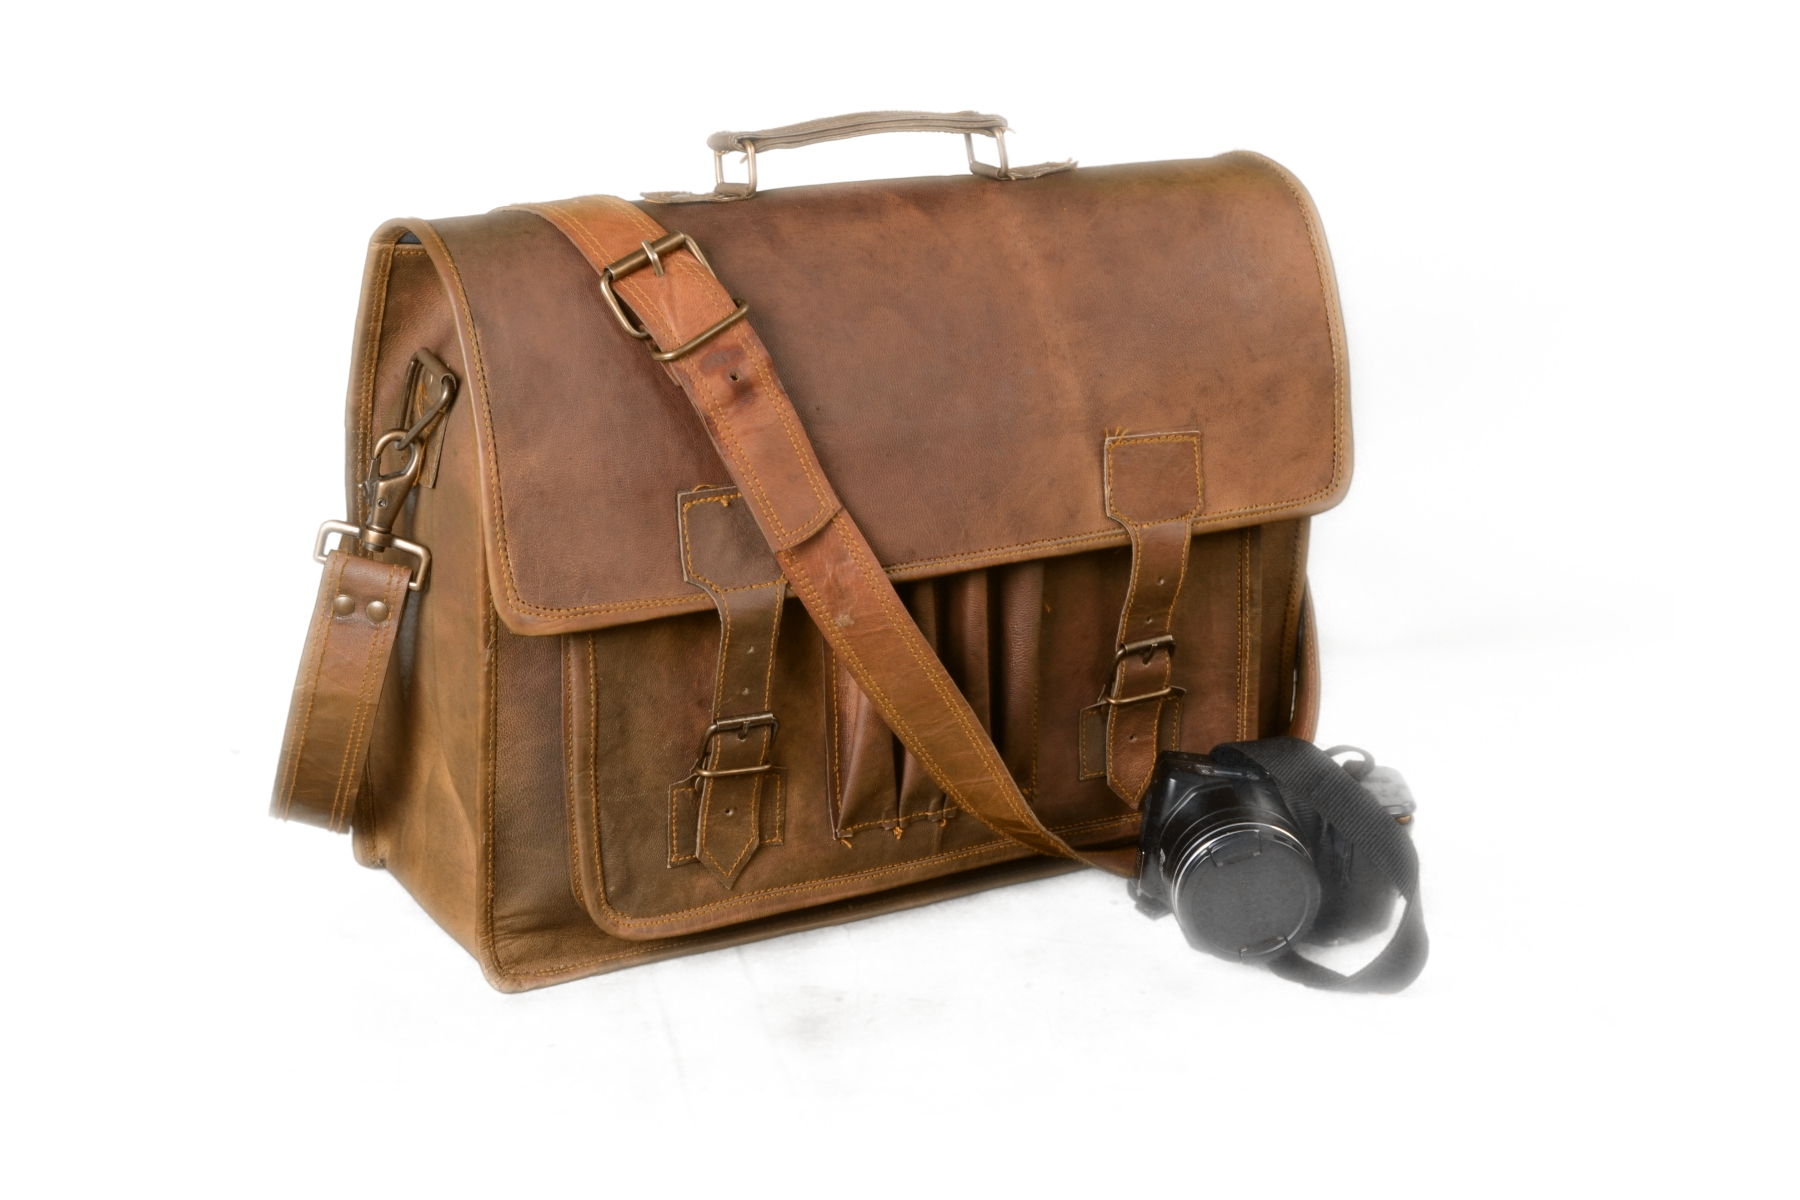 Bag Men/'s Leather Messenger Laptop Shoulder Briefcase Brown Business Office Bag